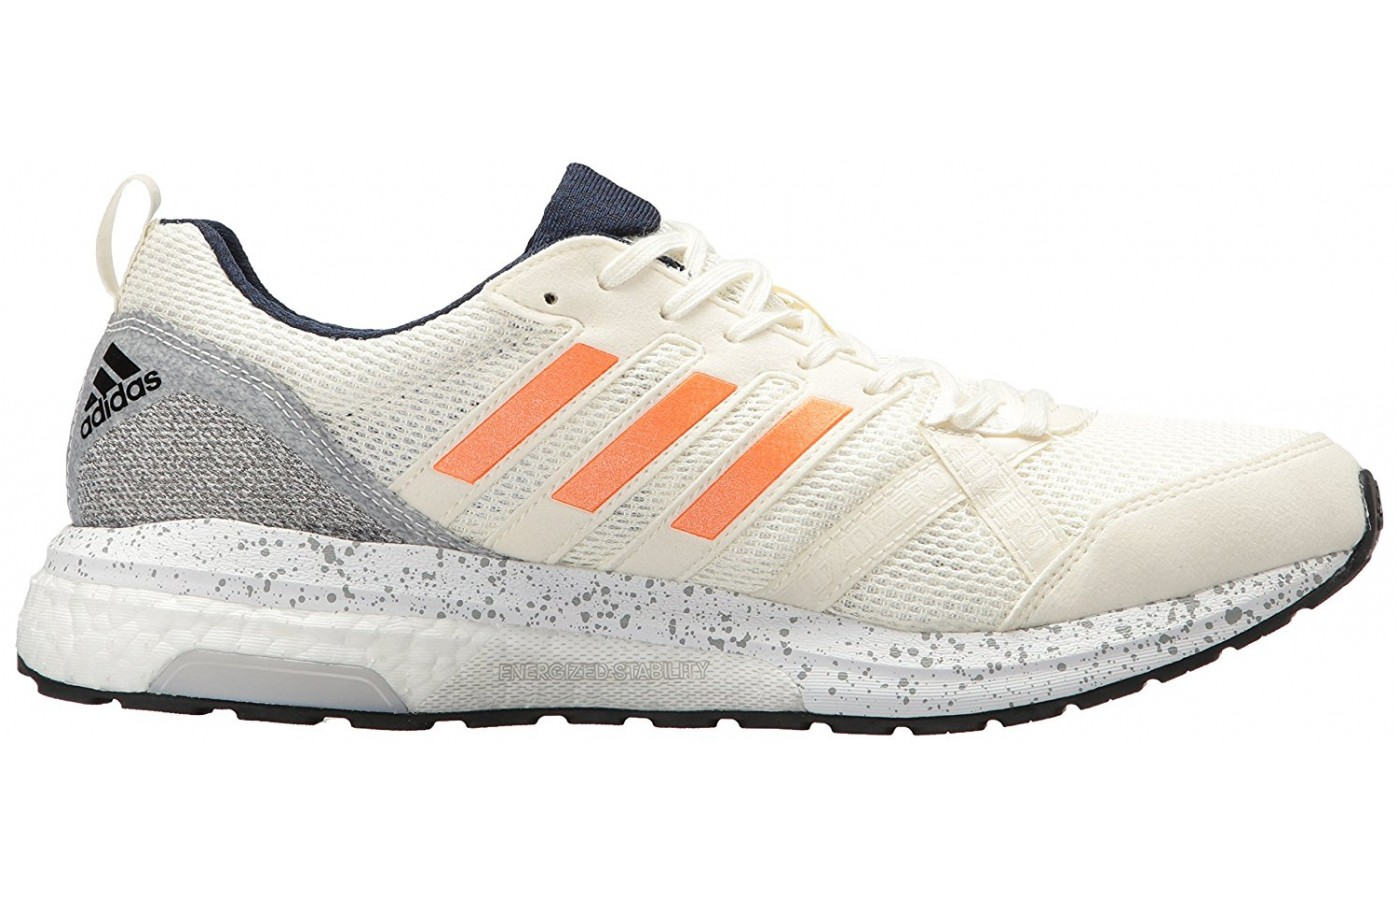 best website ad590 405f1 ... Adidas Adizero Tempo 8 side ...